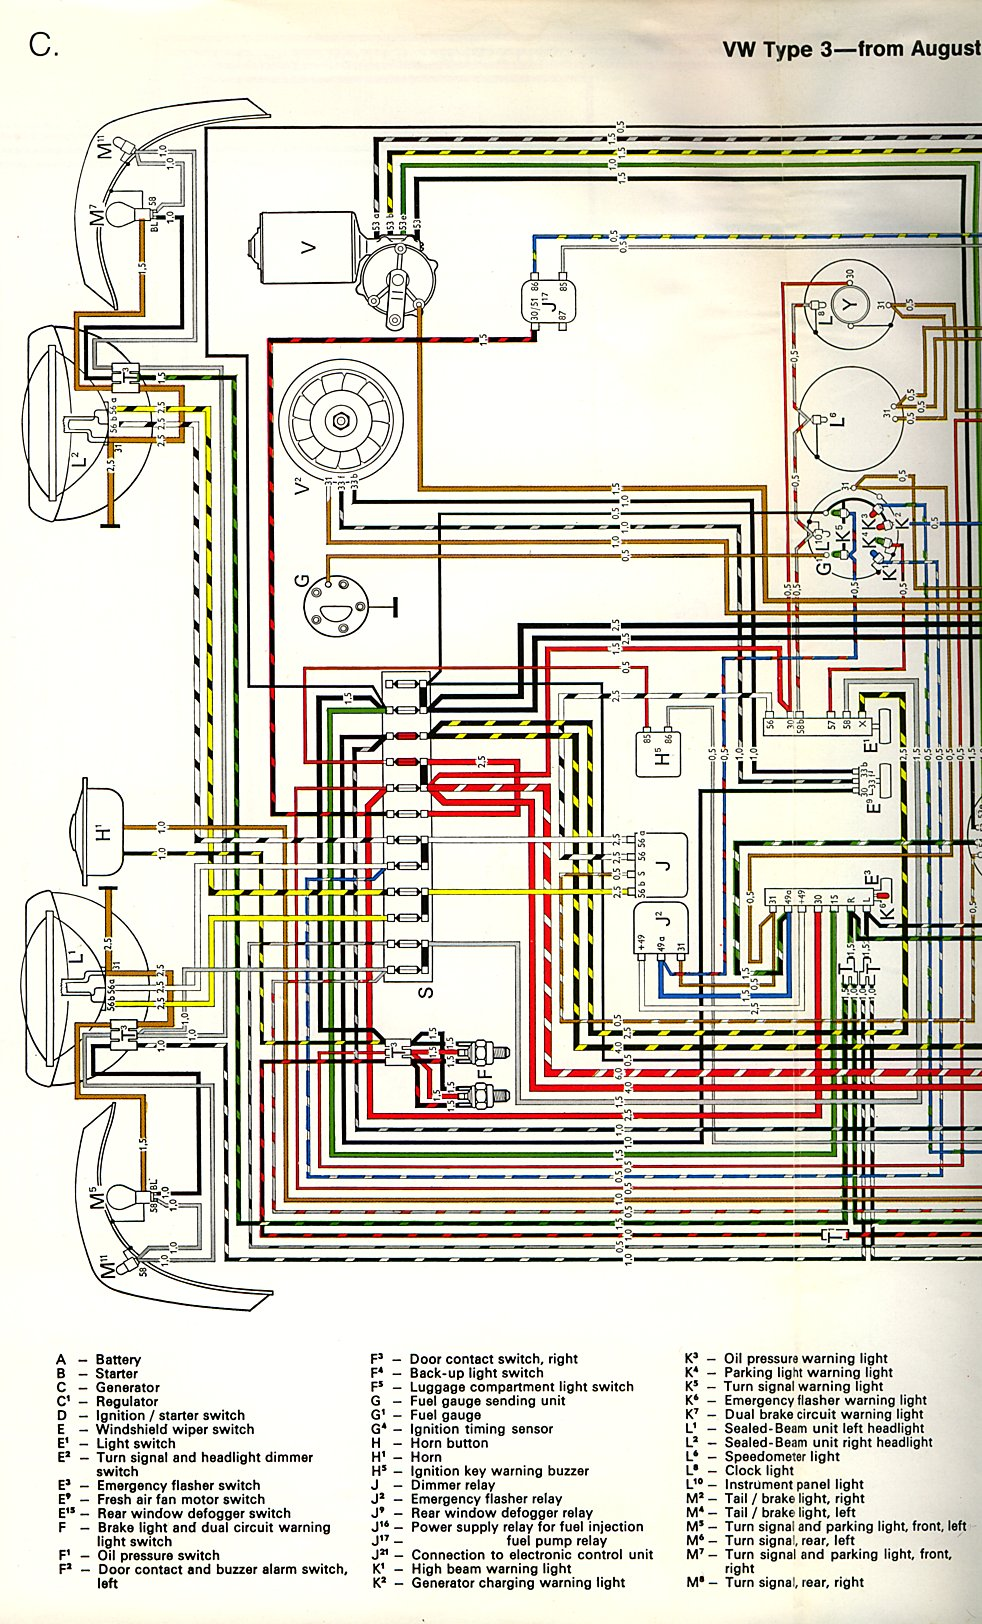 Bugfuses likewise Speedo likewise Volkswagen Beetle Fuse Box likewise Type A as well Vw Wiring Diagrams. on 1973 super beetle fuse box diagram